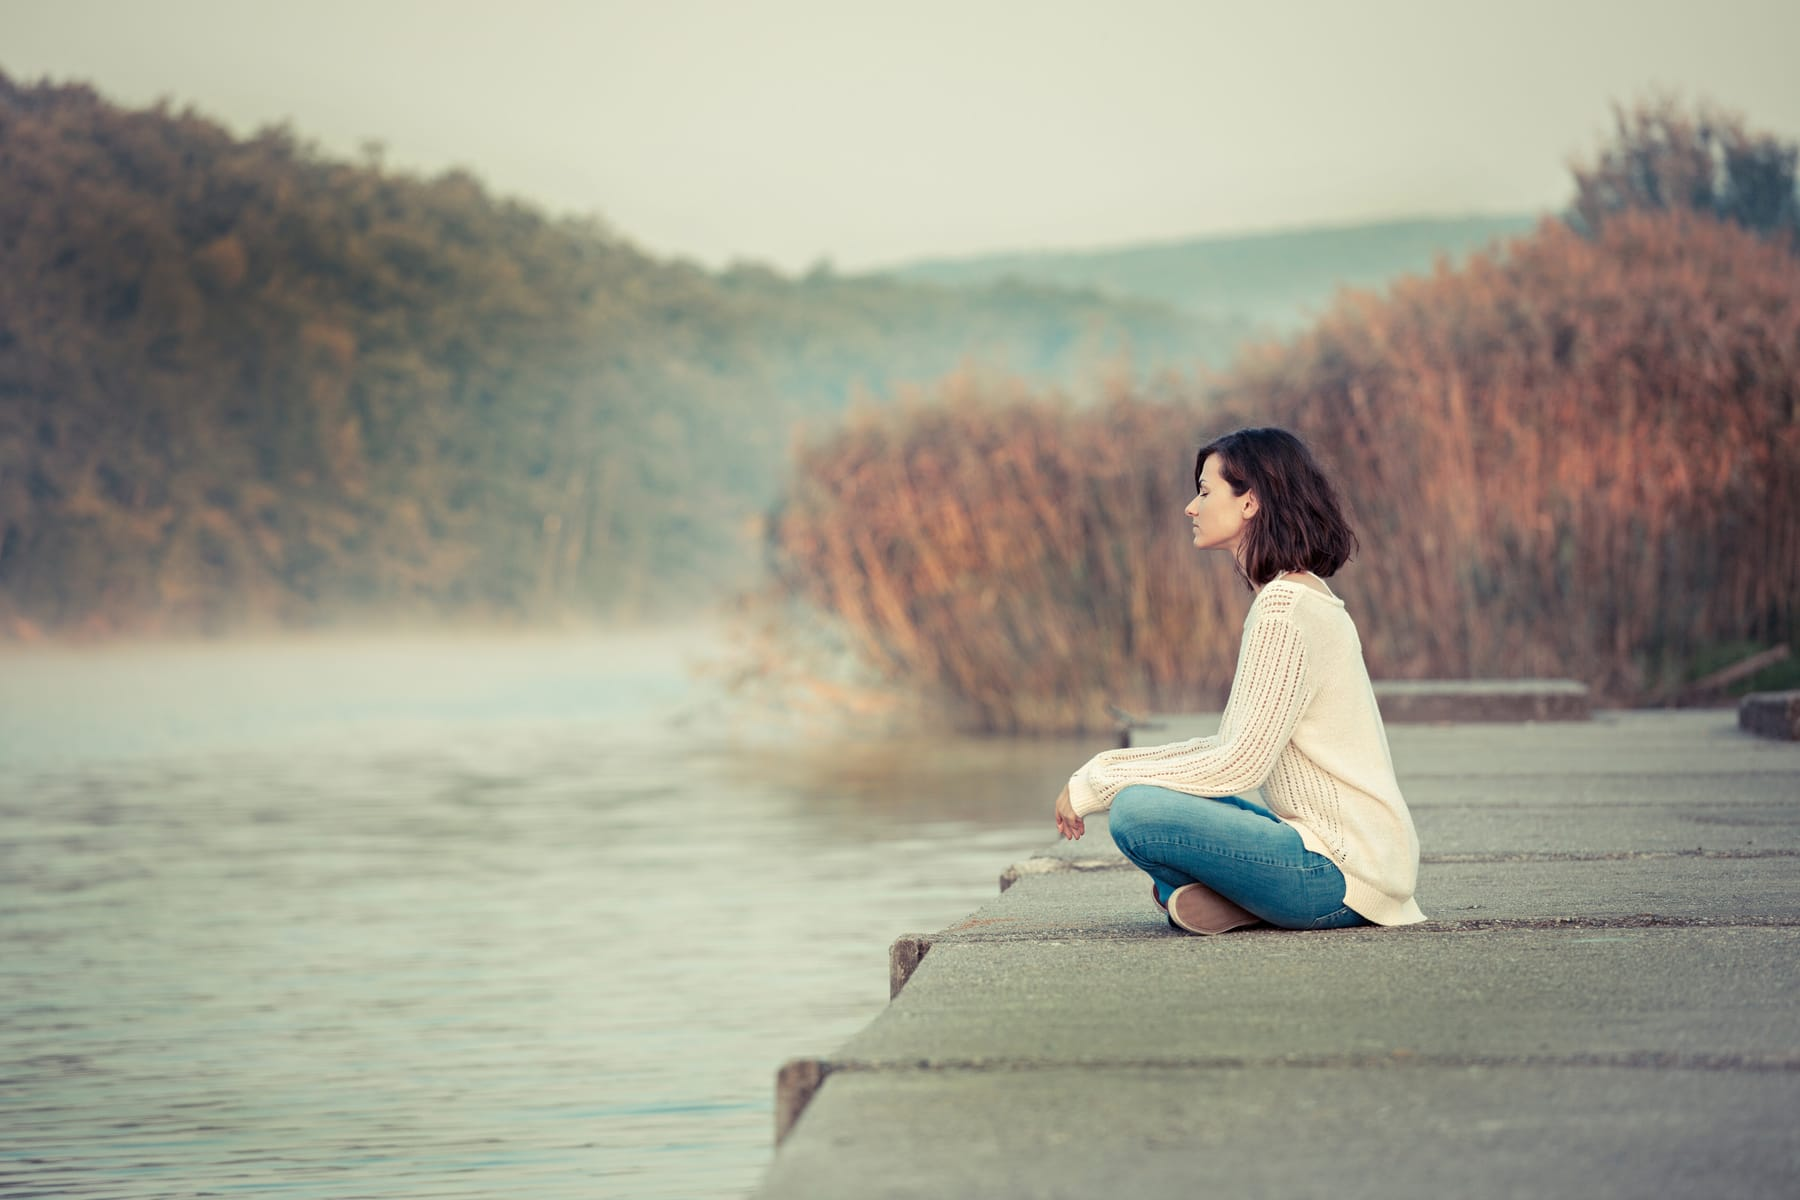 Relaxation by lake. Young woman sitting and looking away. Chilly morning.